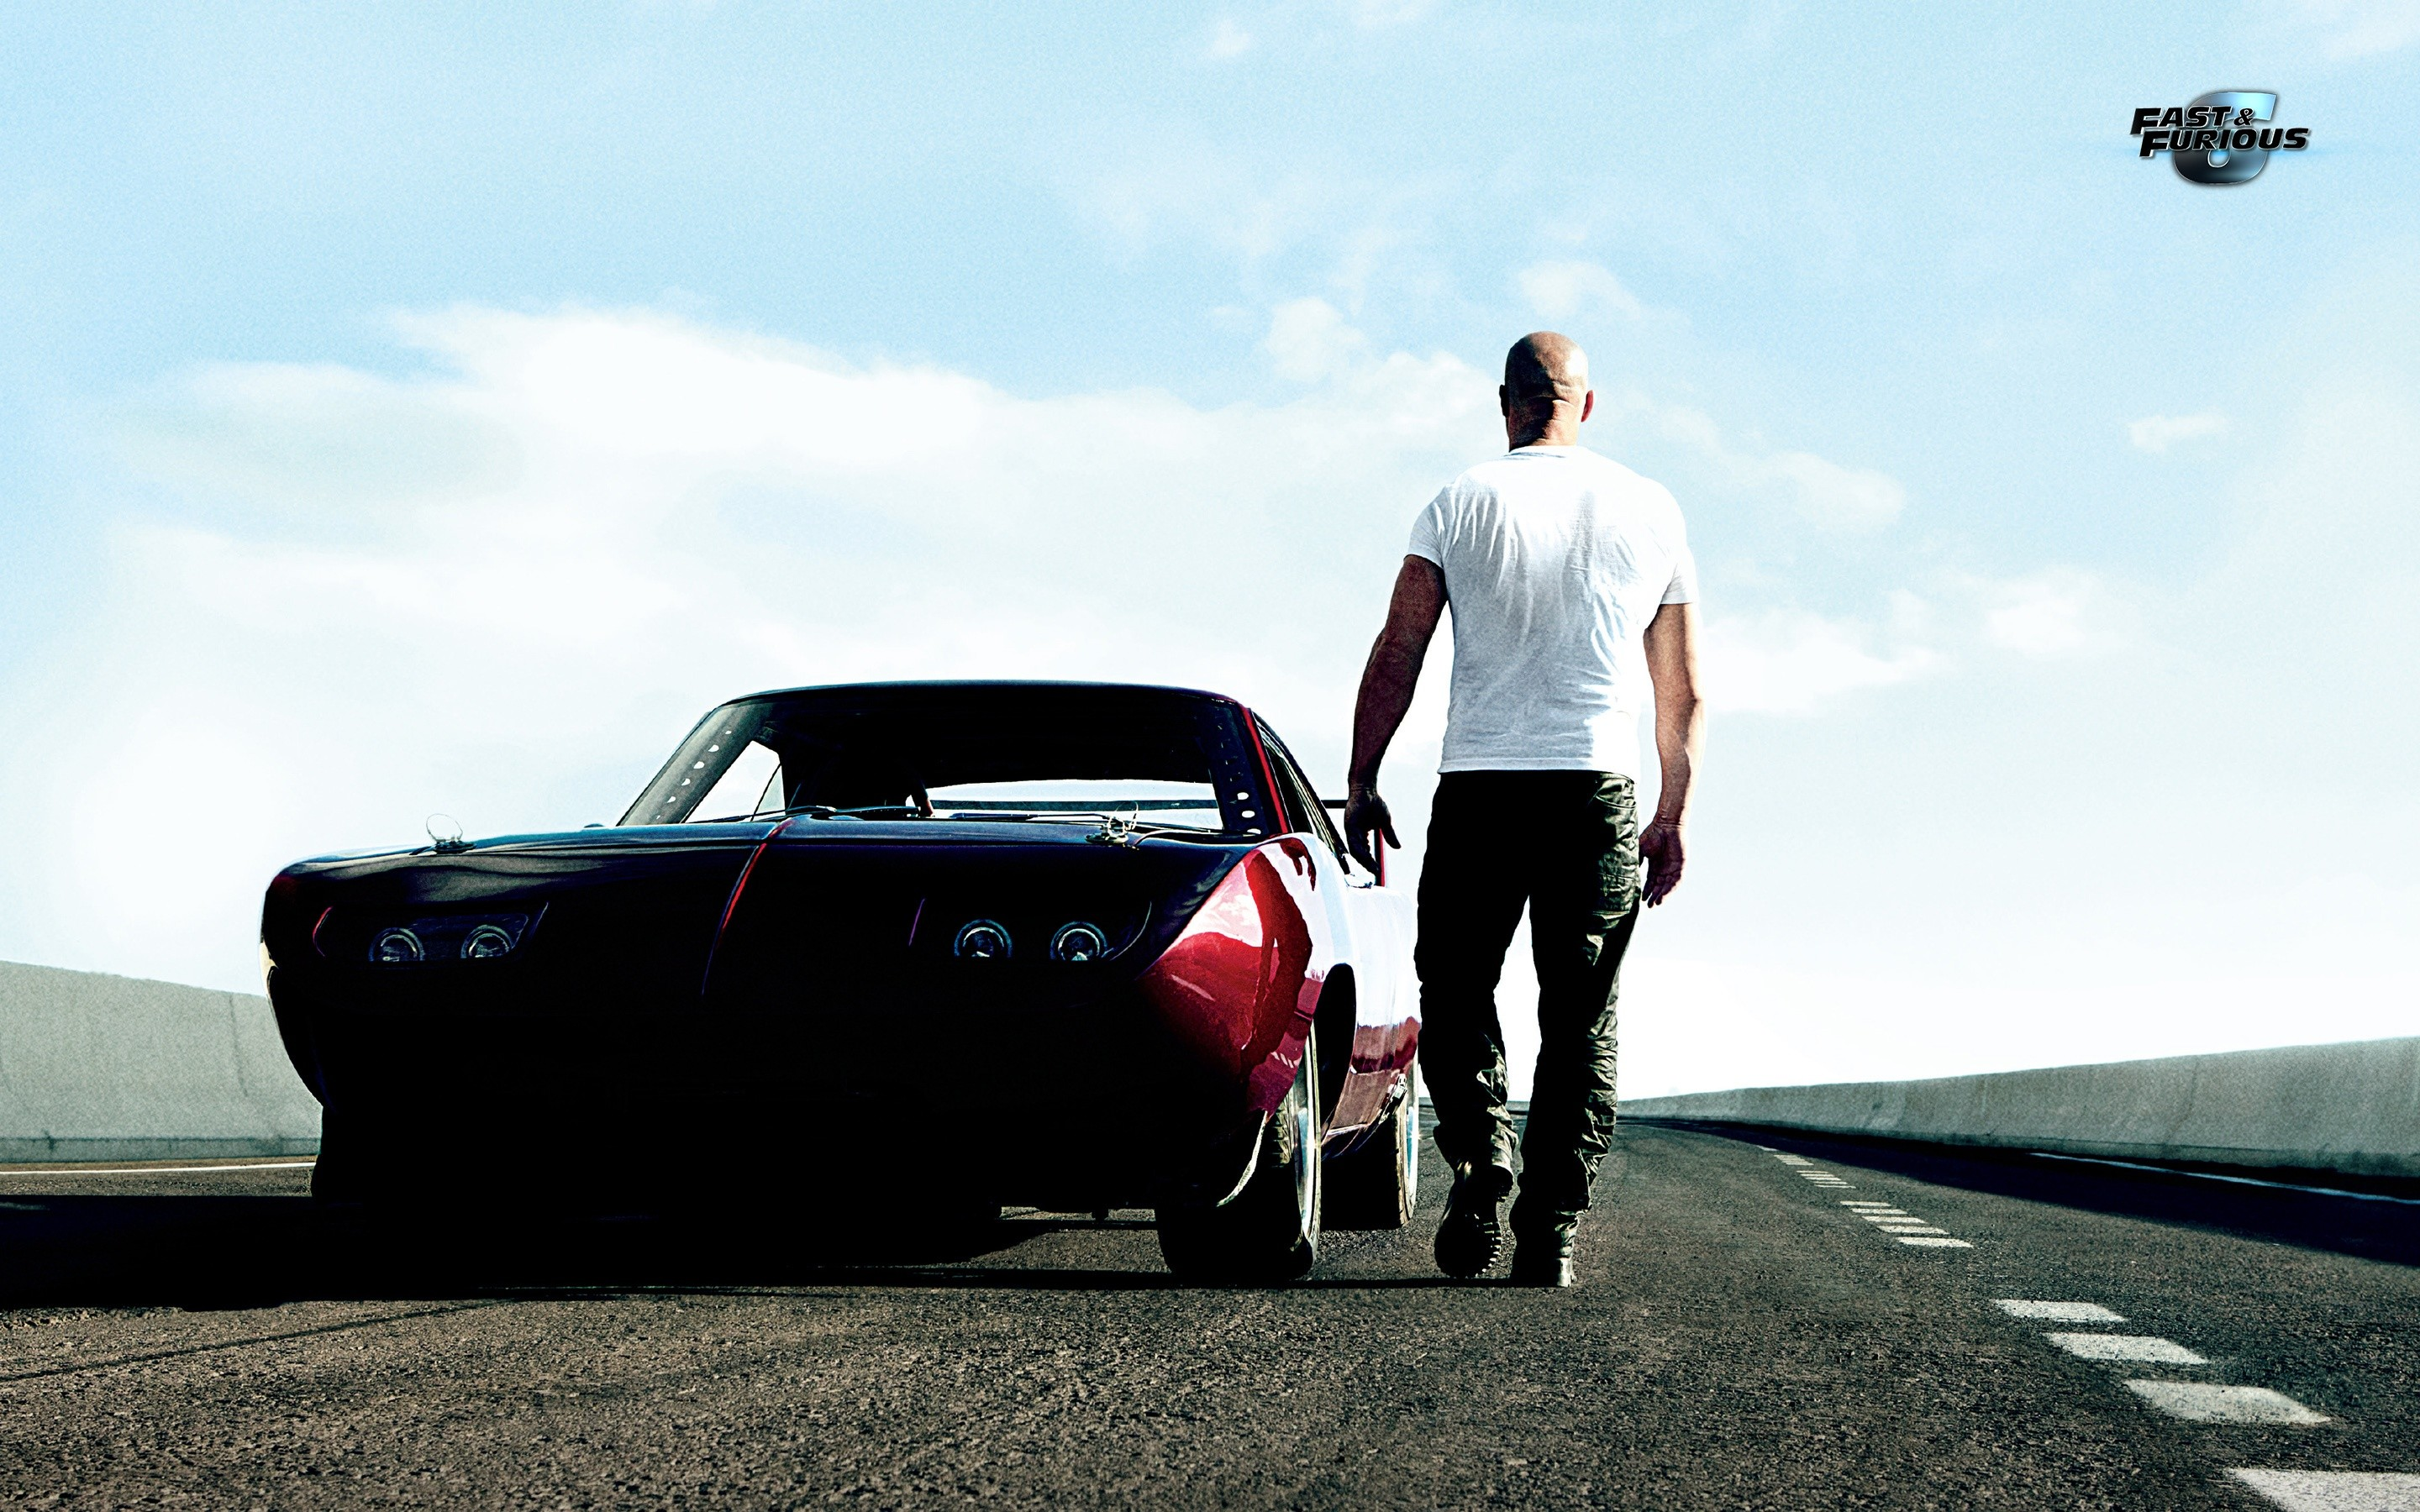 Allinallwalls Car Wallpapers 2014 Iphone Car Fast Cool: Super Fast Cars Wallpapers (64+ Images